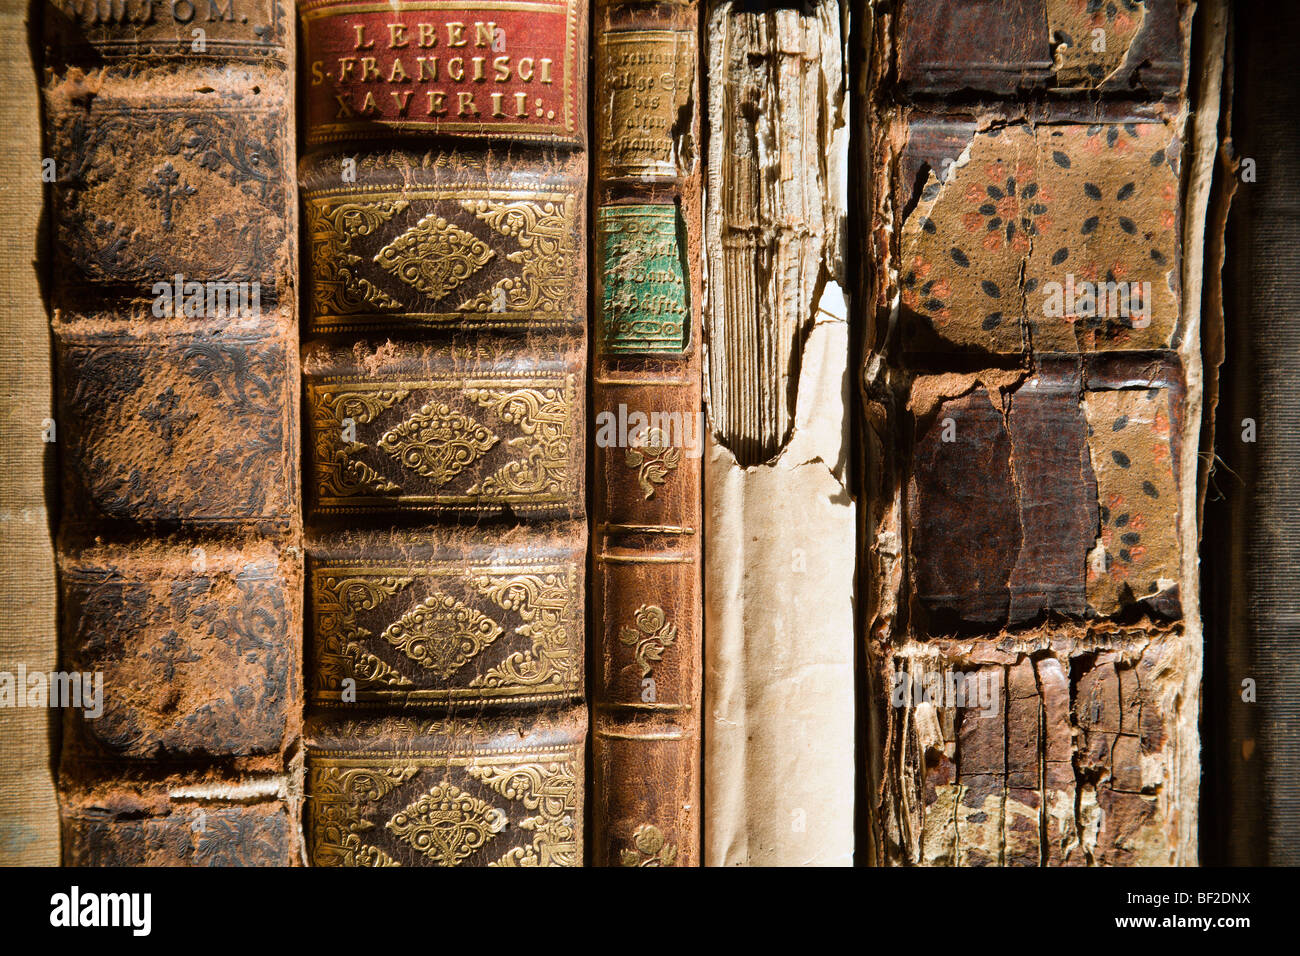 detail of old books - Stock Image